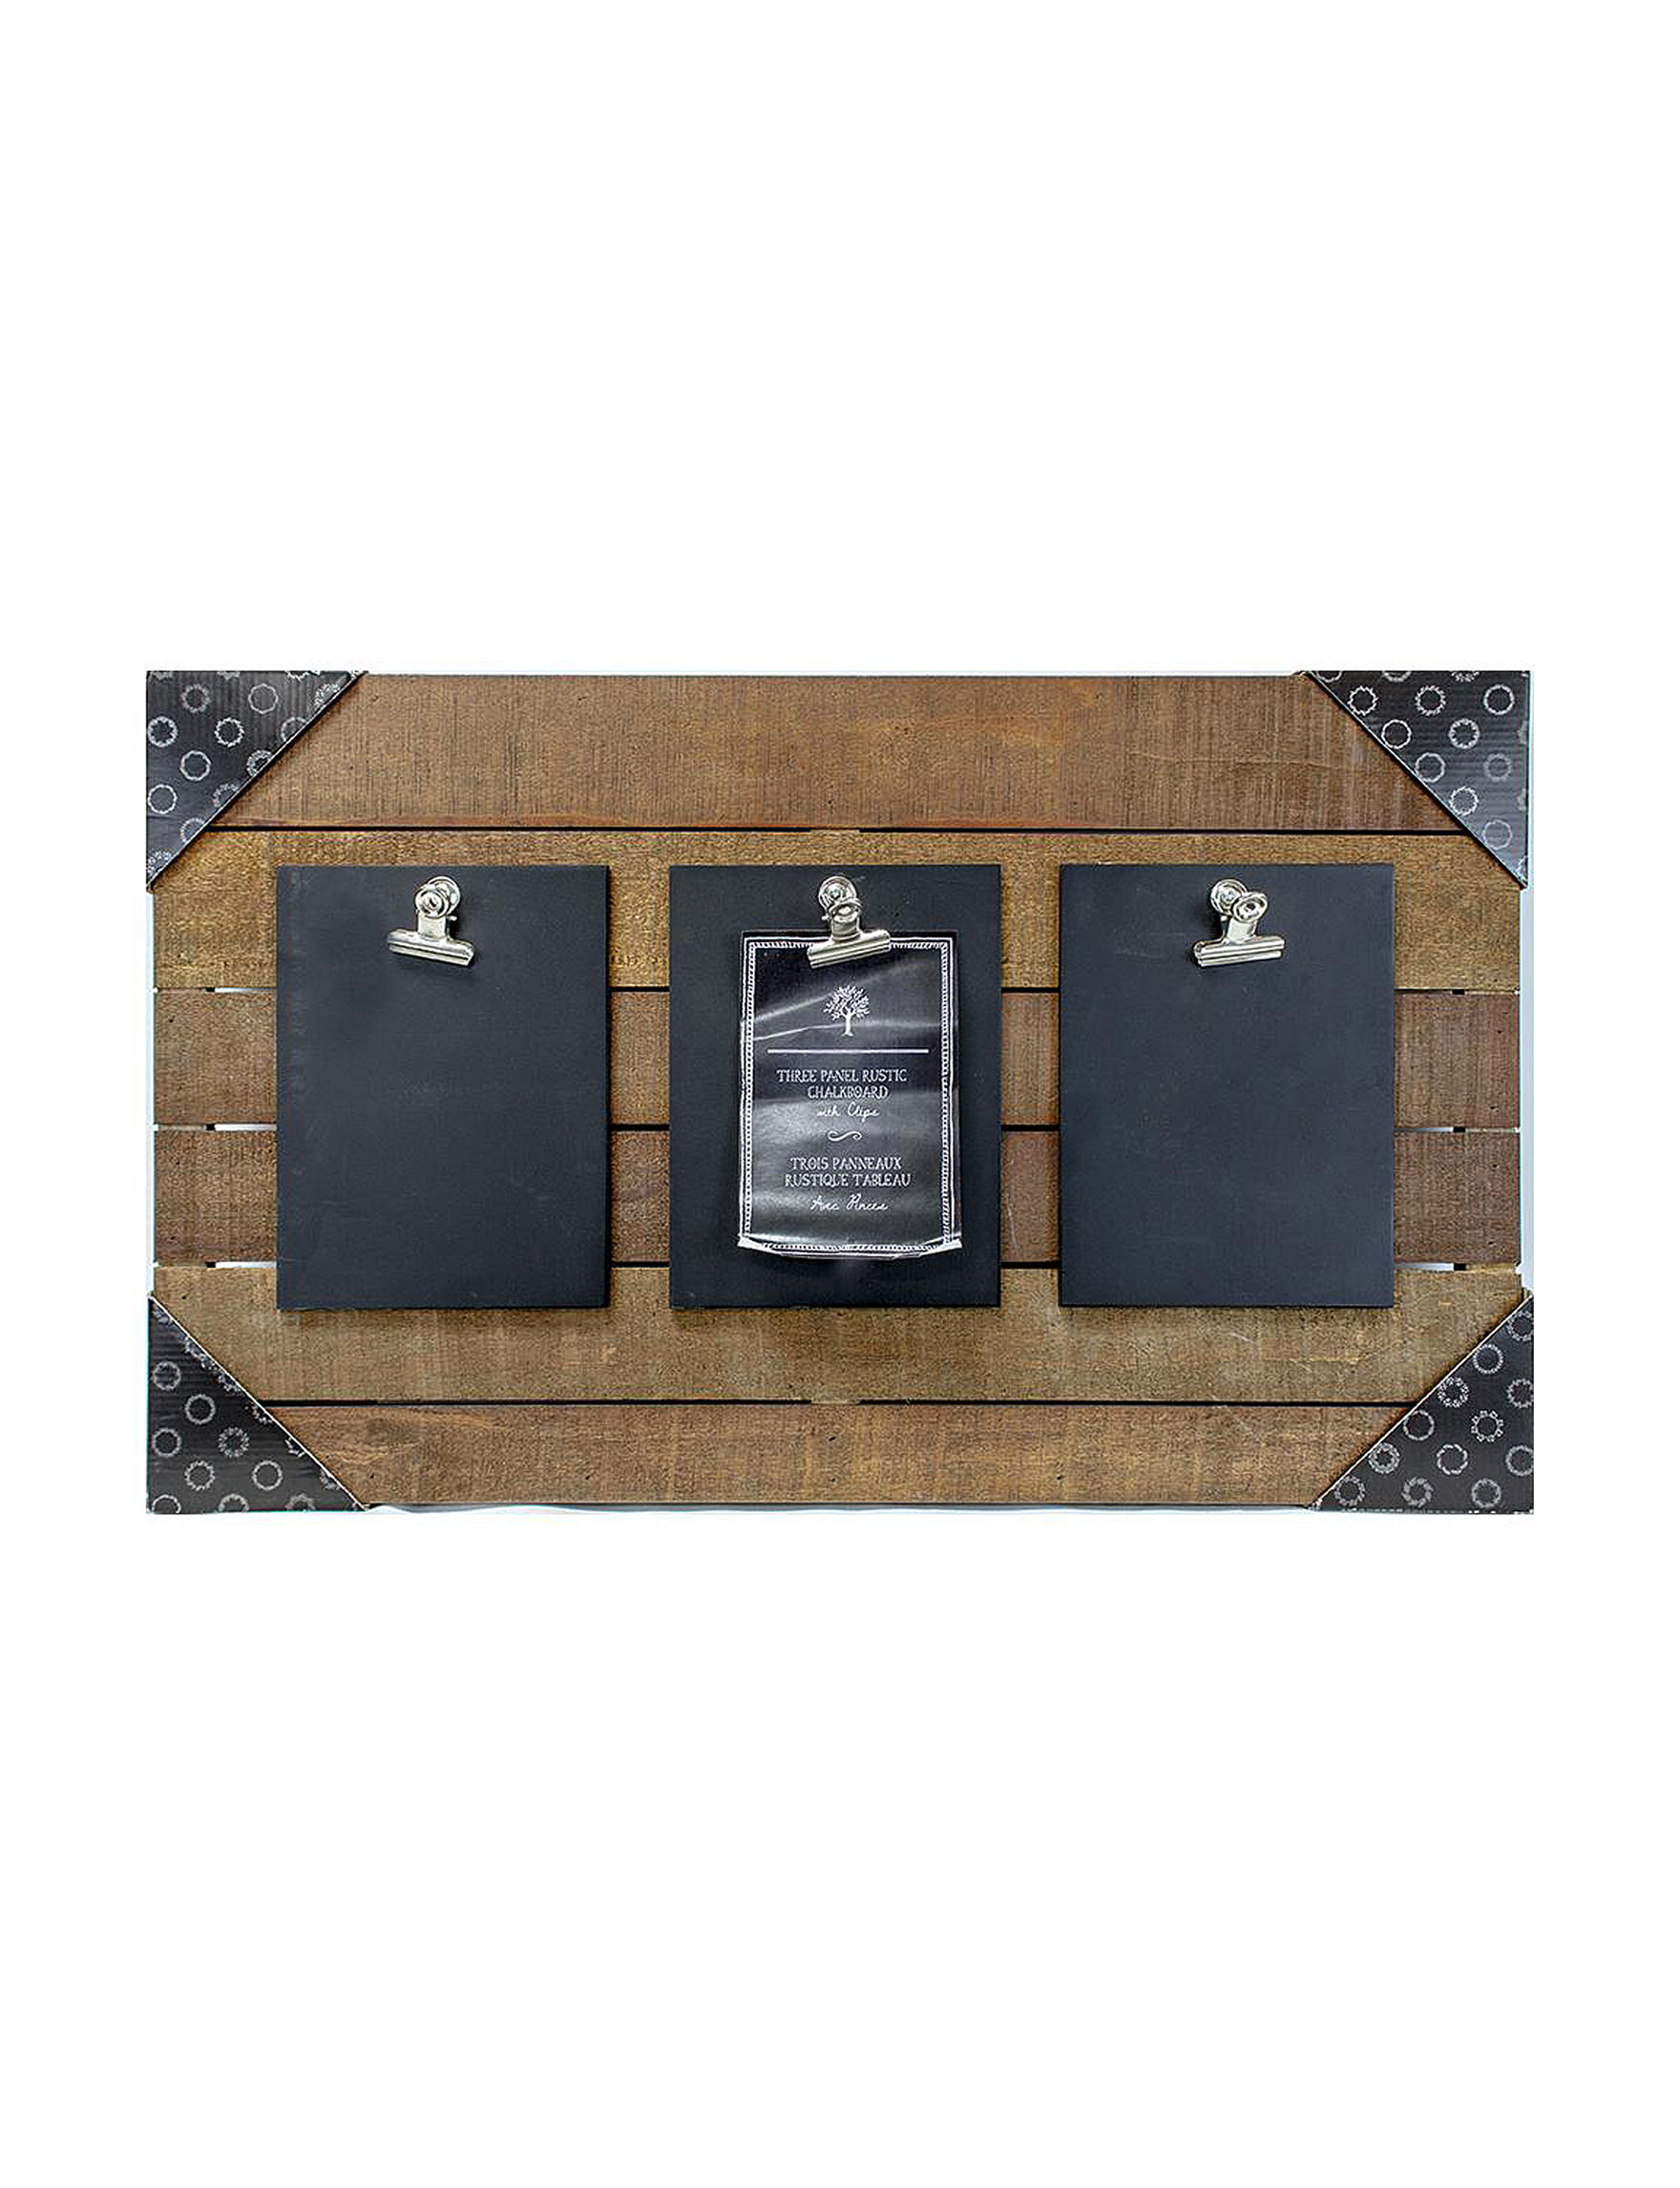 BP Industries Dark Brown Decorative Objects Frames & Shadow Boxes